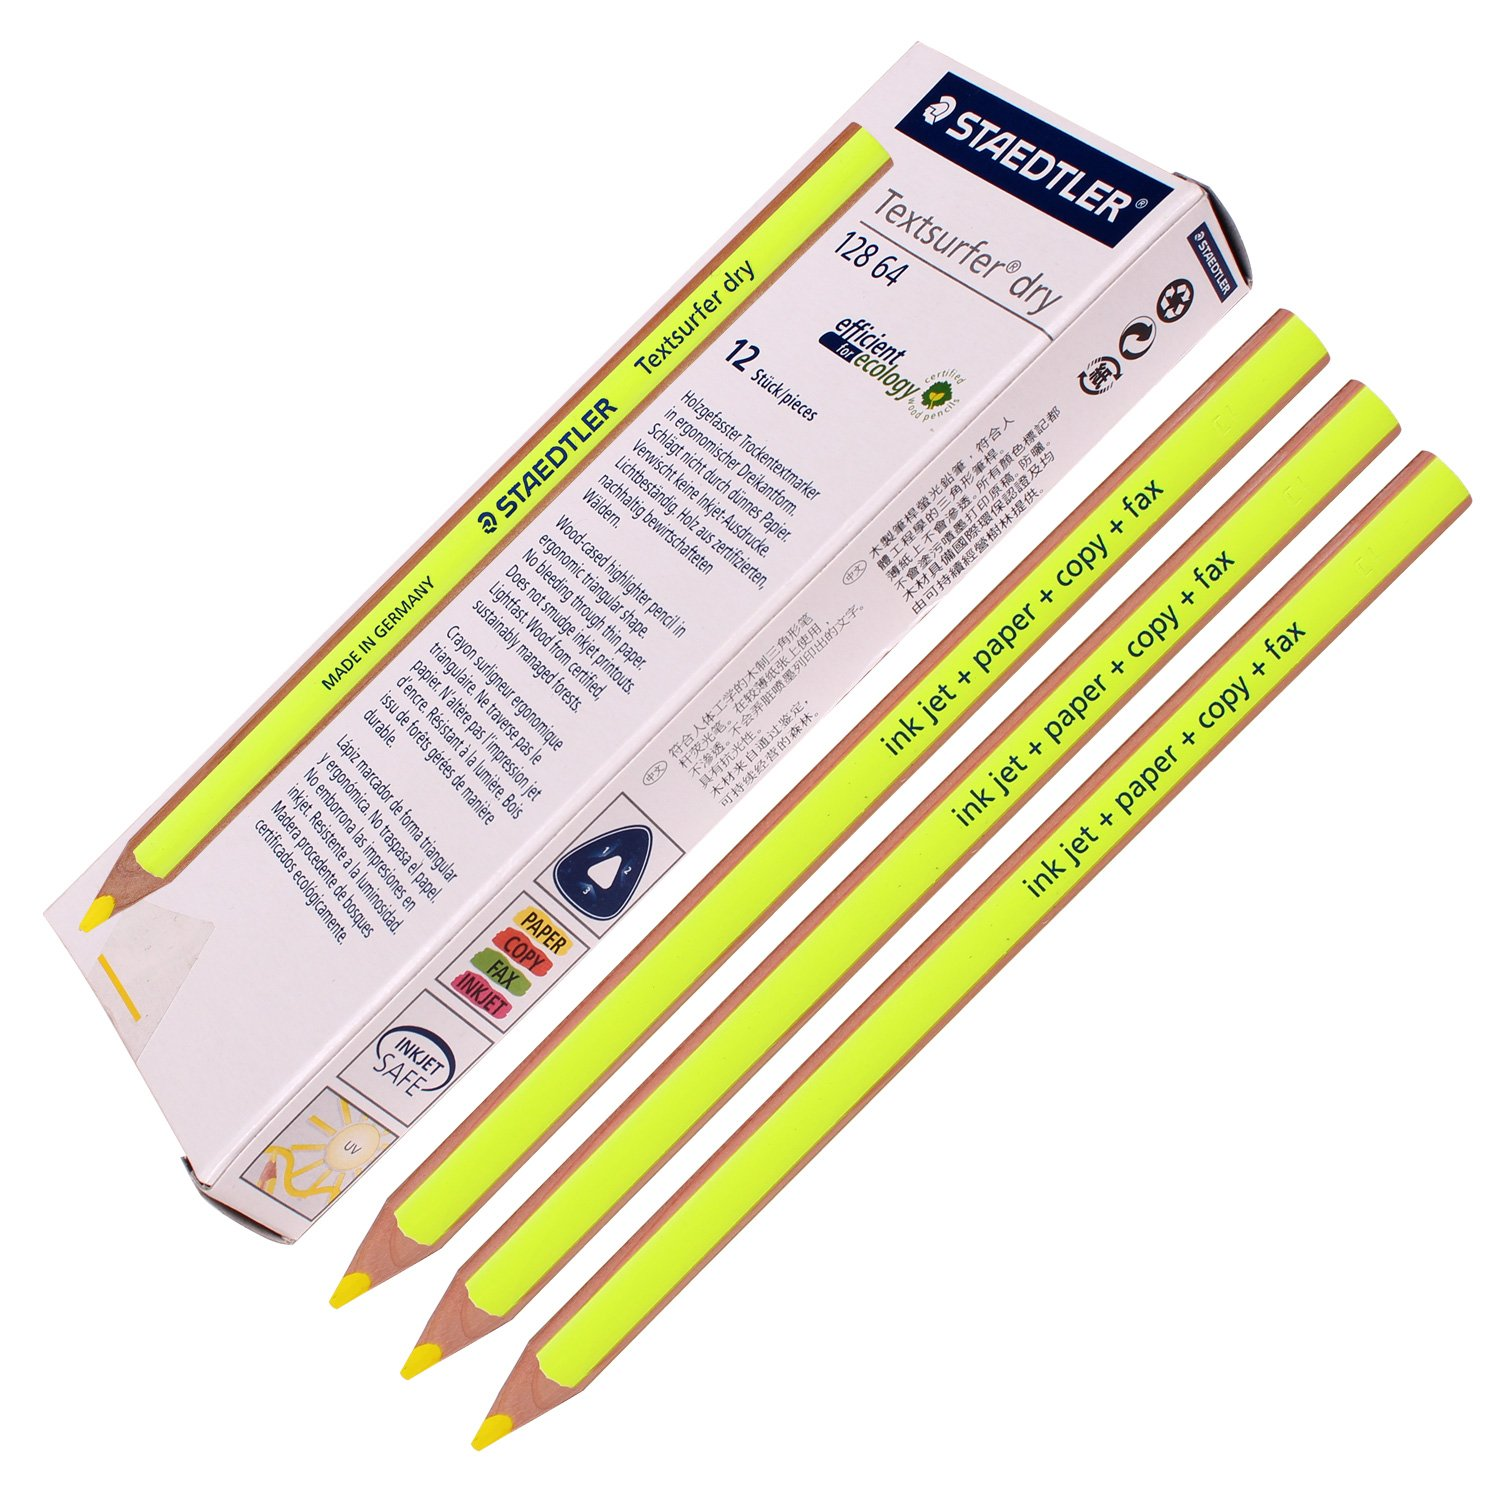 Staedtler Textsurfer Dry Highlighter Pencil 128 64 Drawing for Writing Sketching Inkjet,paper,copy,fax (Pack of 12 Yellow)